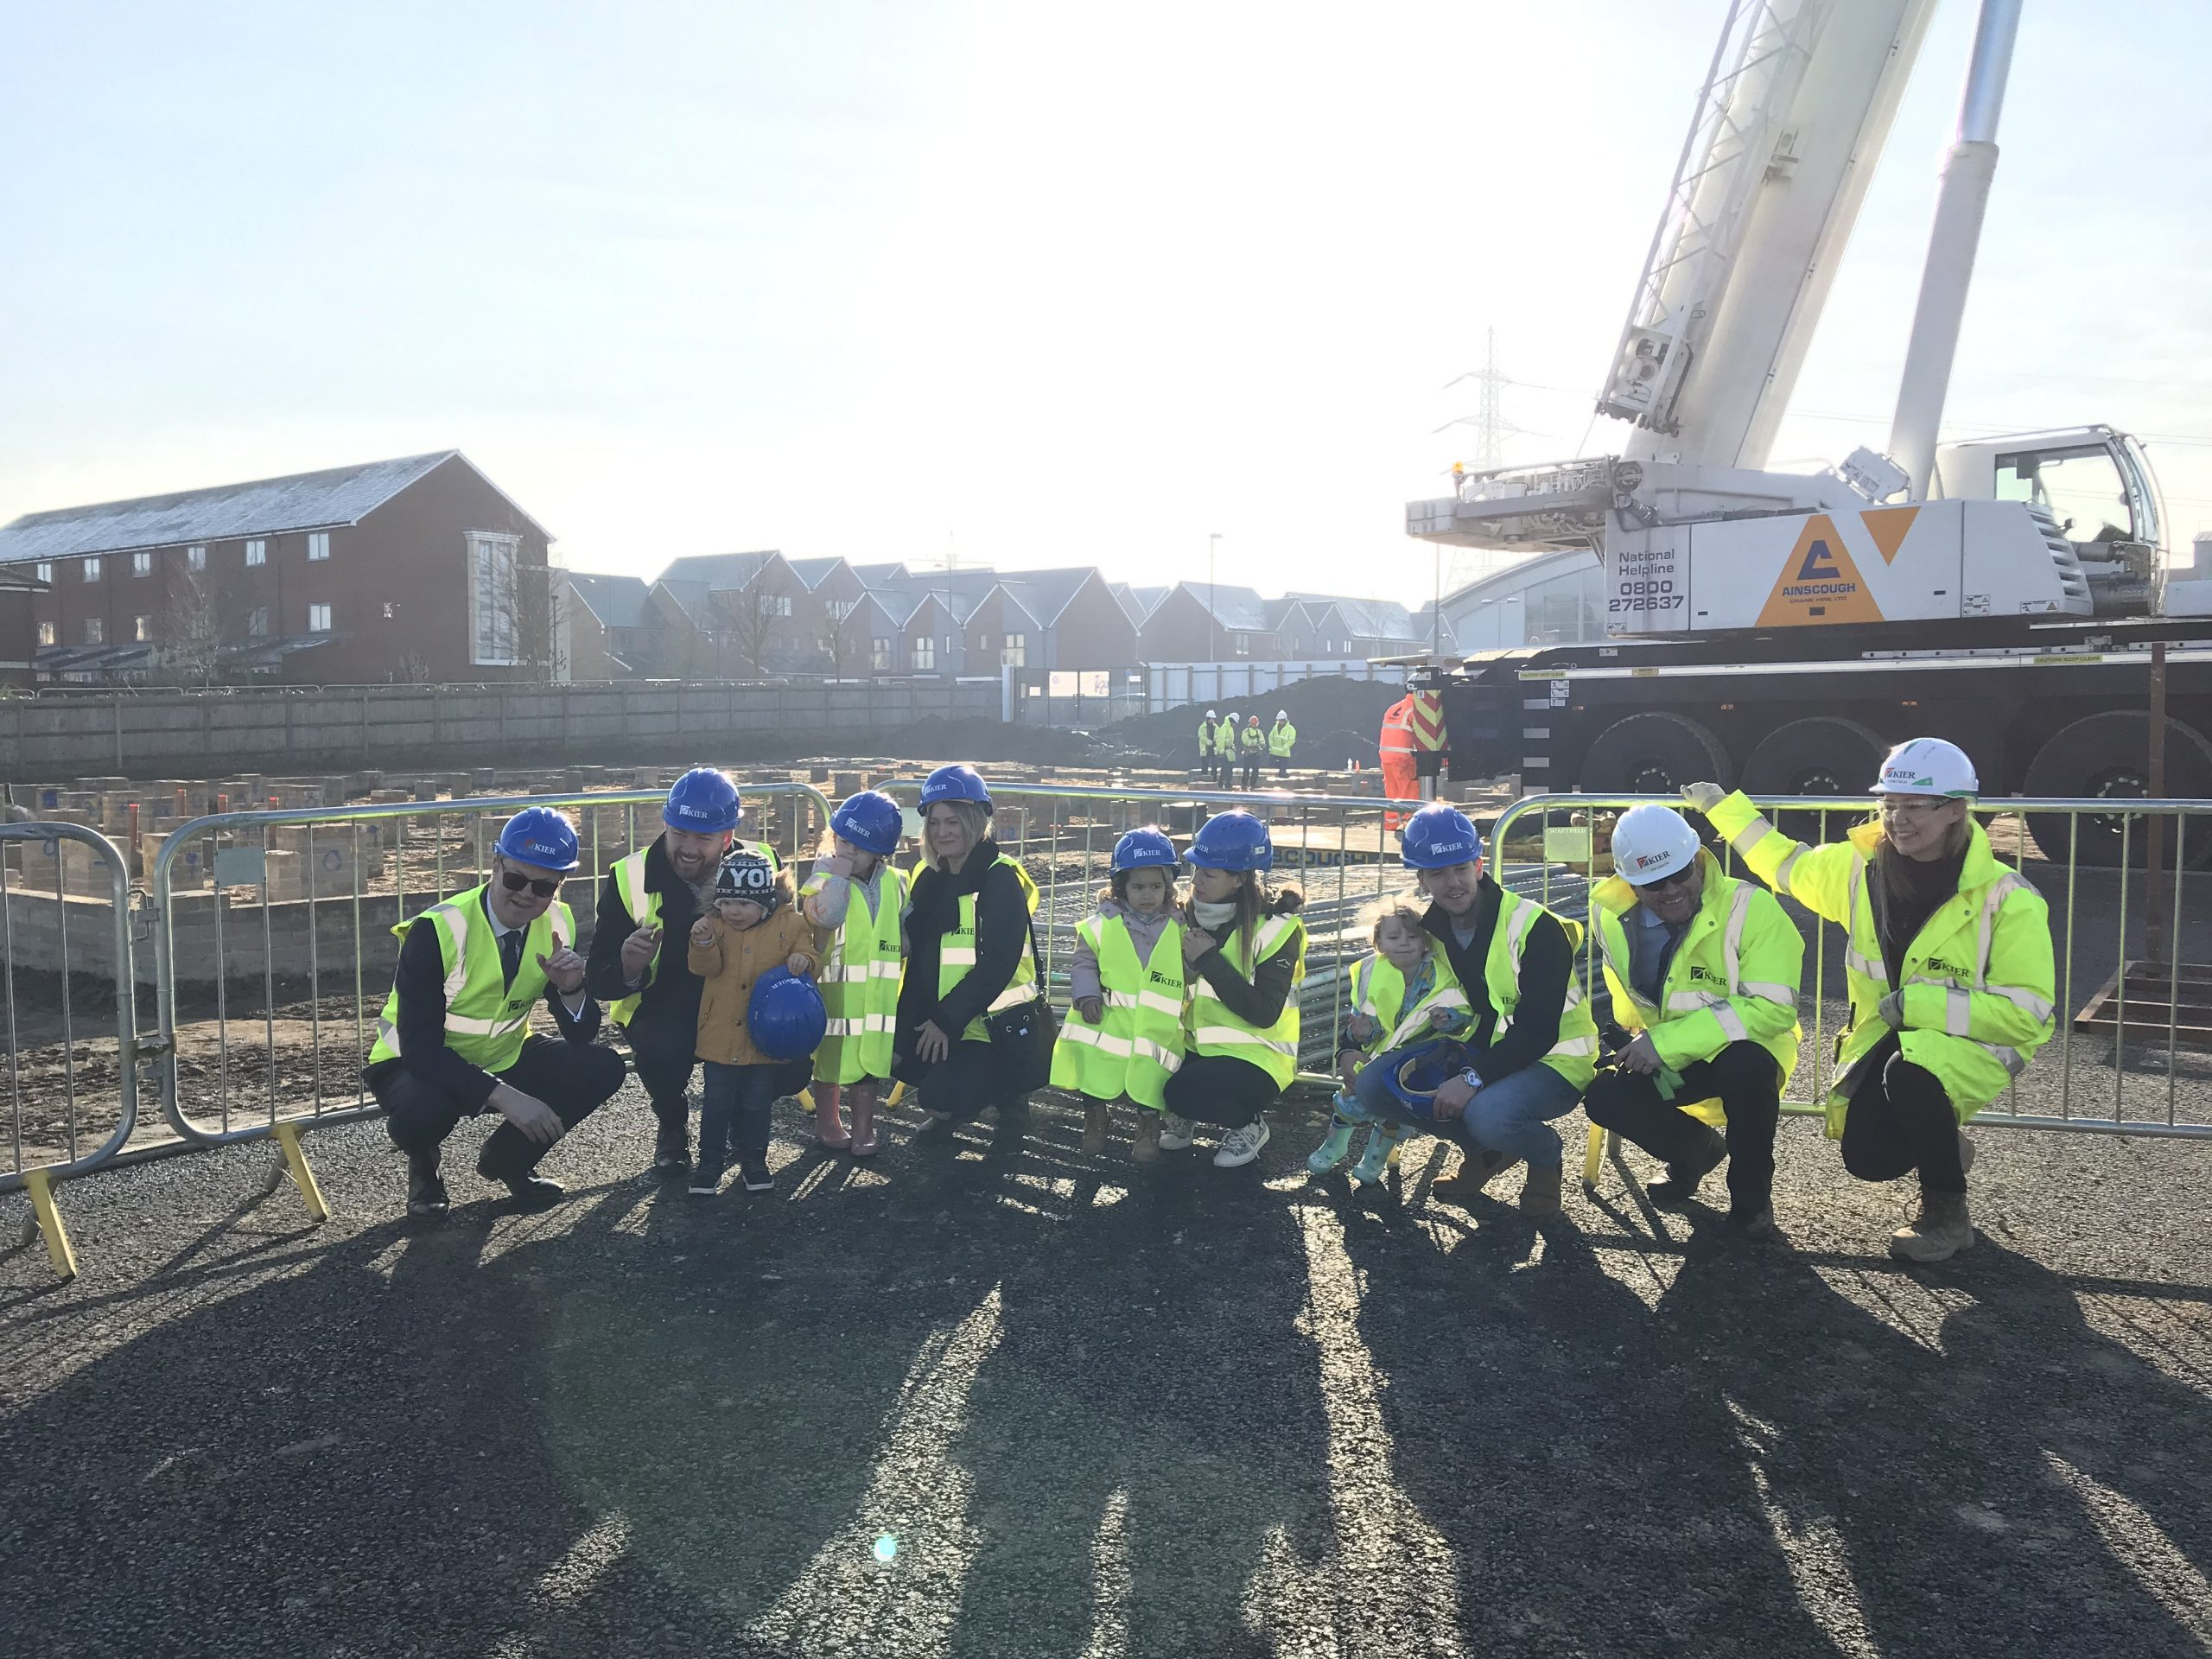 A group of people near a crane